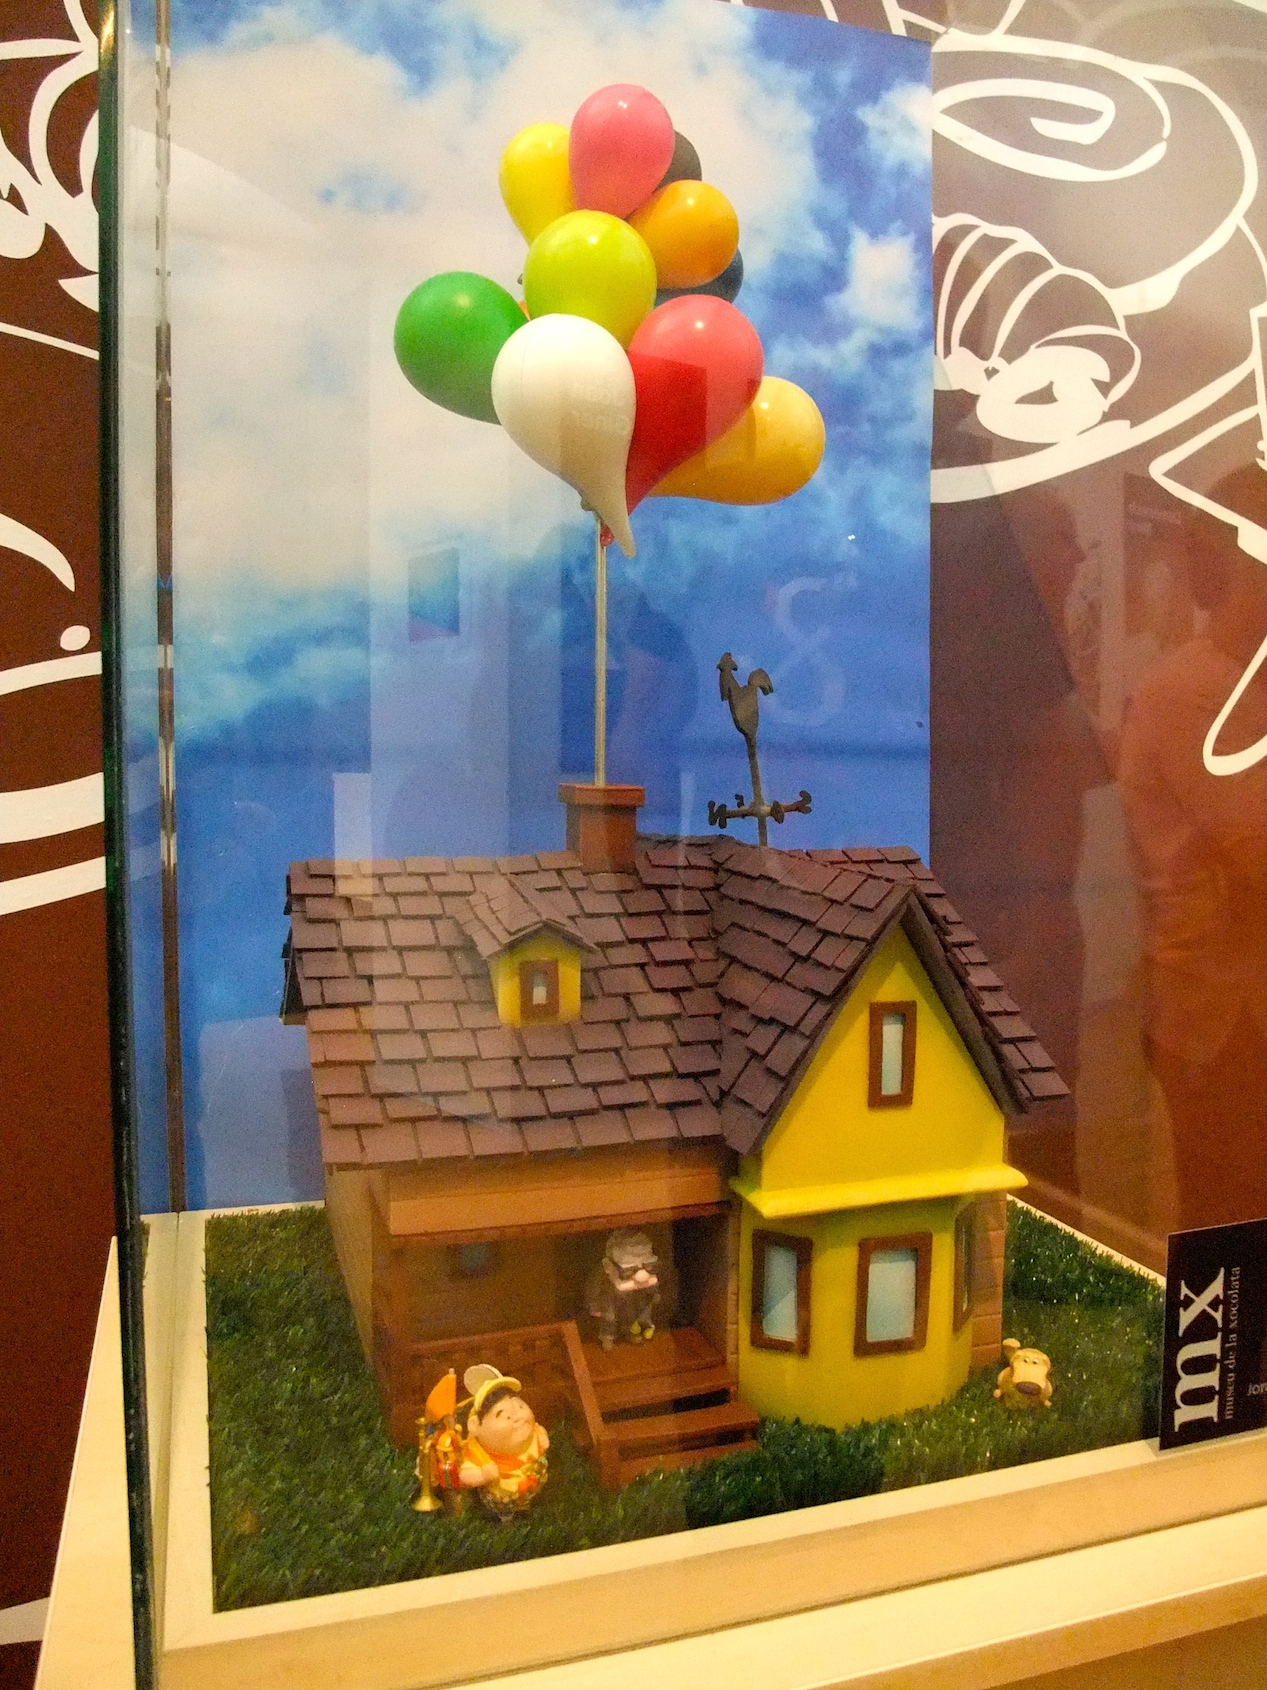 The house in Pixar's Up made out of chocolate